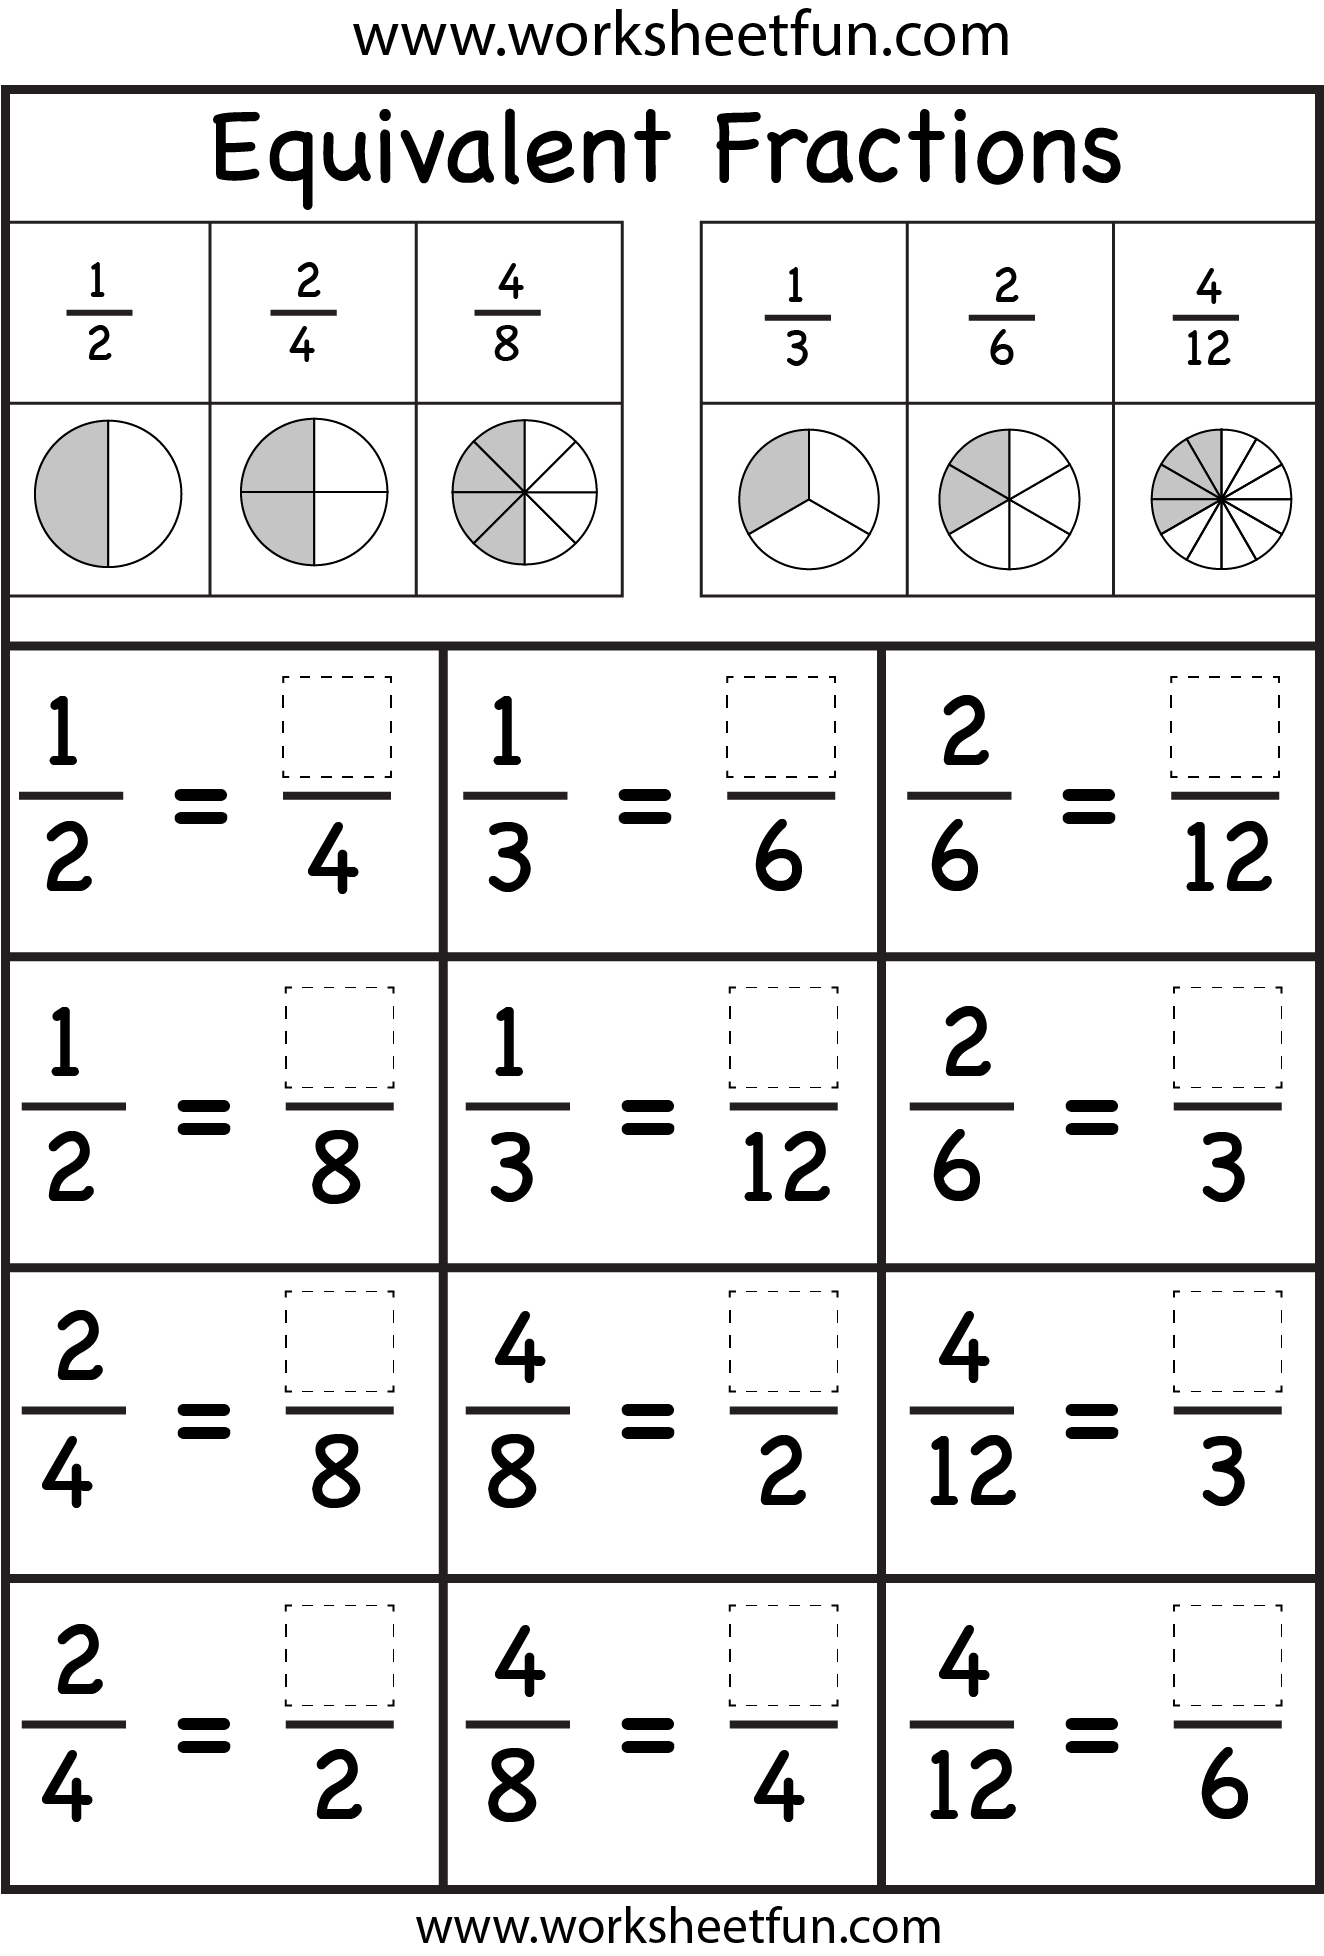 Equivalent fractions | Fraction Worksheets | Pinterest | An ...